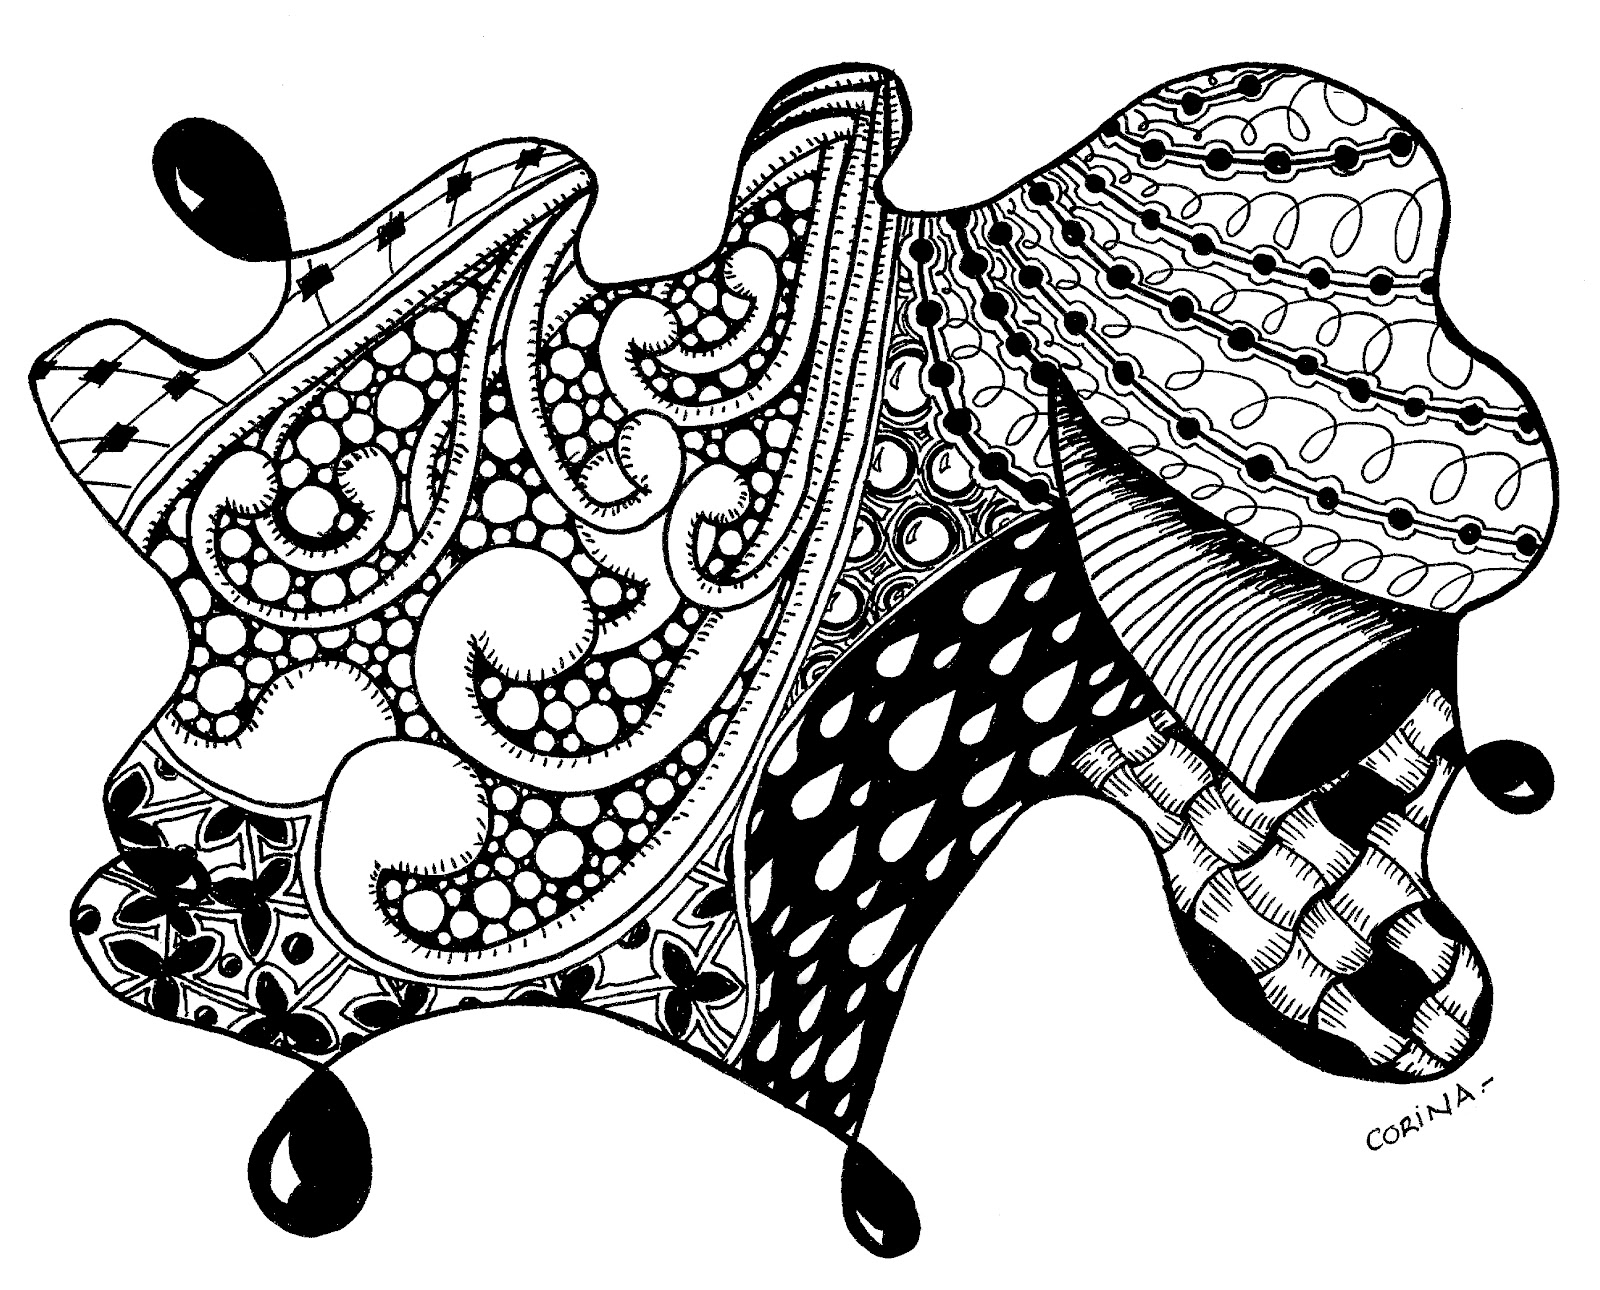 coloring pages zentangle zentangle to download for free zentangle kids coloring pages pages zentangle coloring